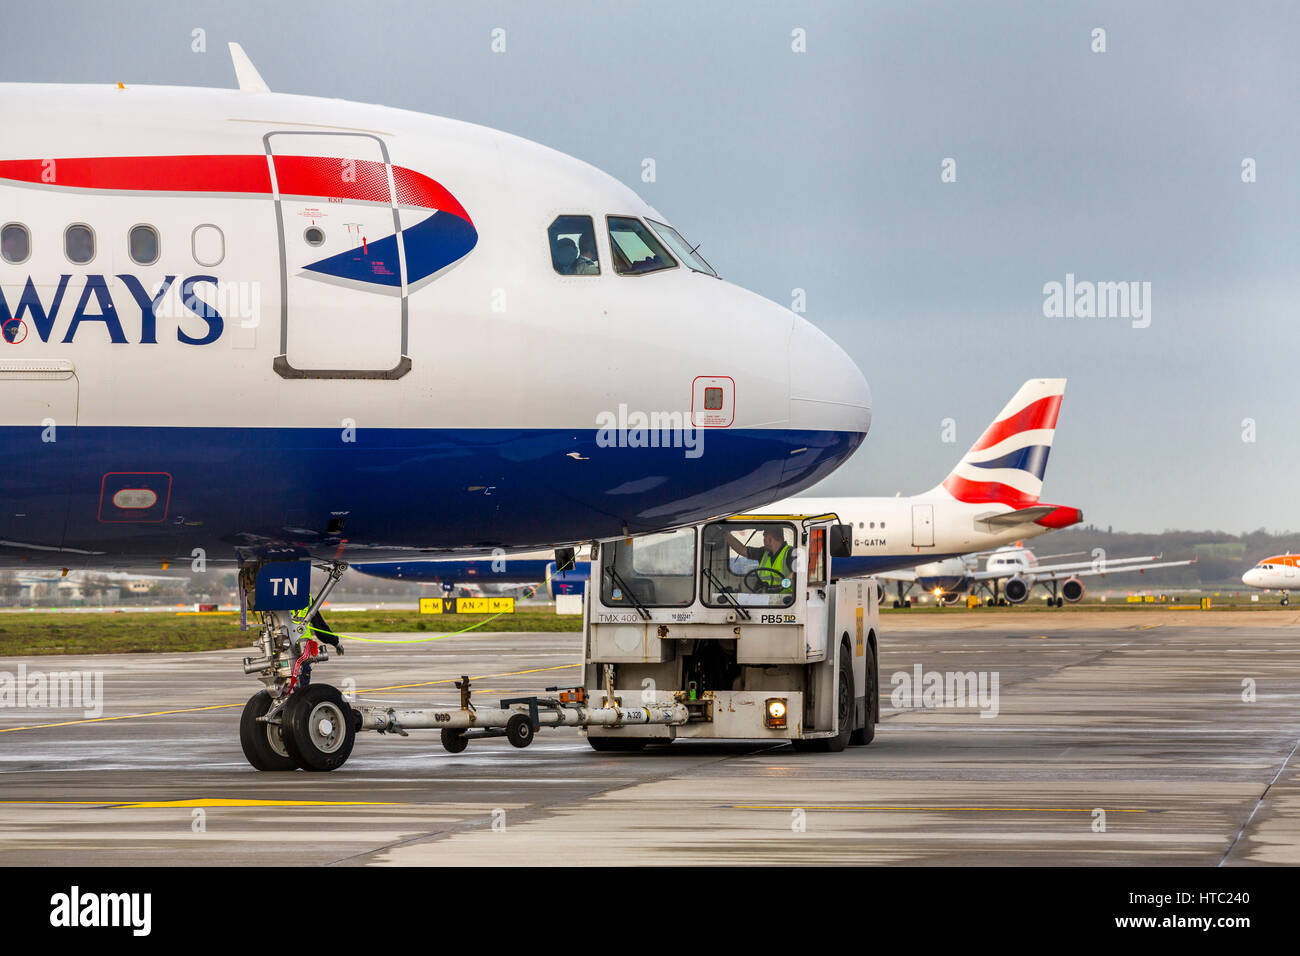 Airbus aircraft towed by a tug taxi for takeoff Gatwick airport  London England UK - Stock Image